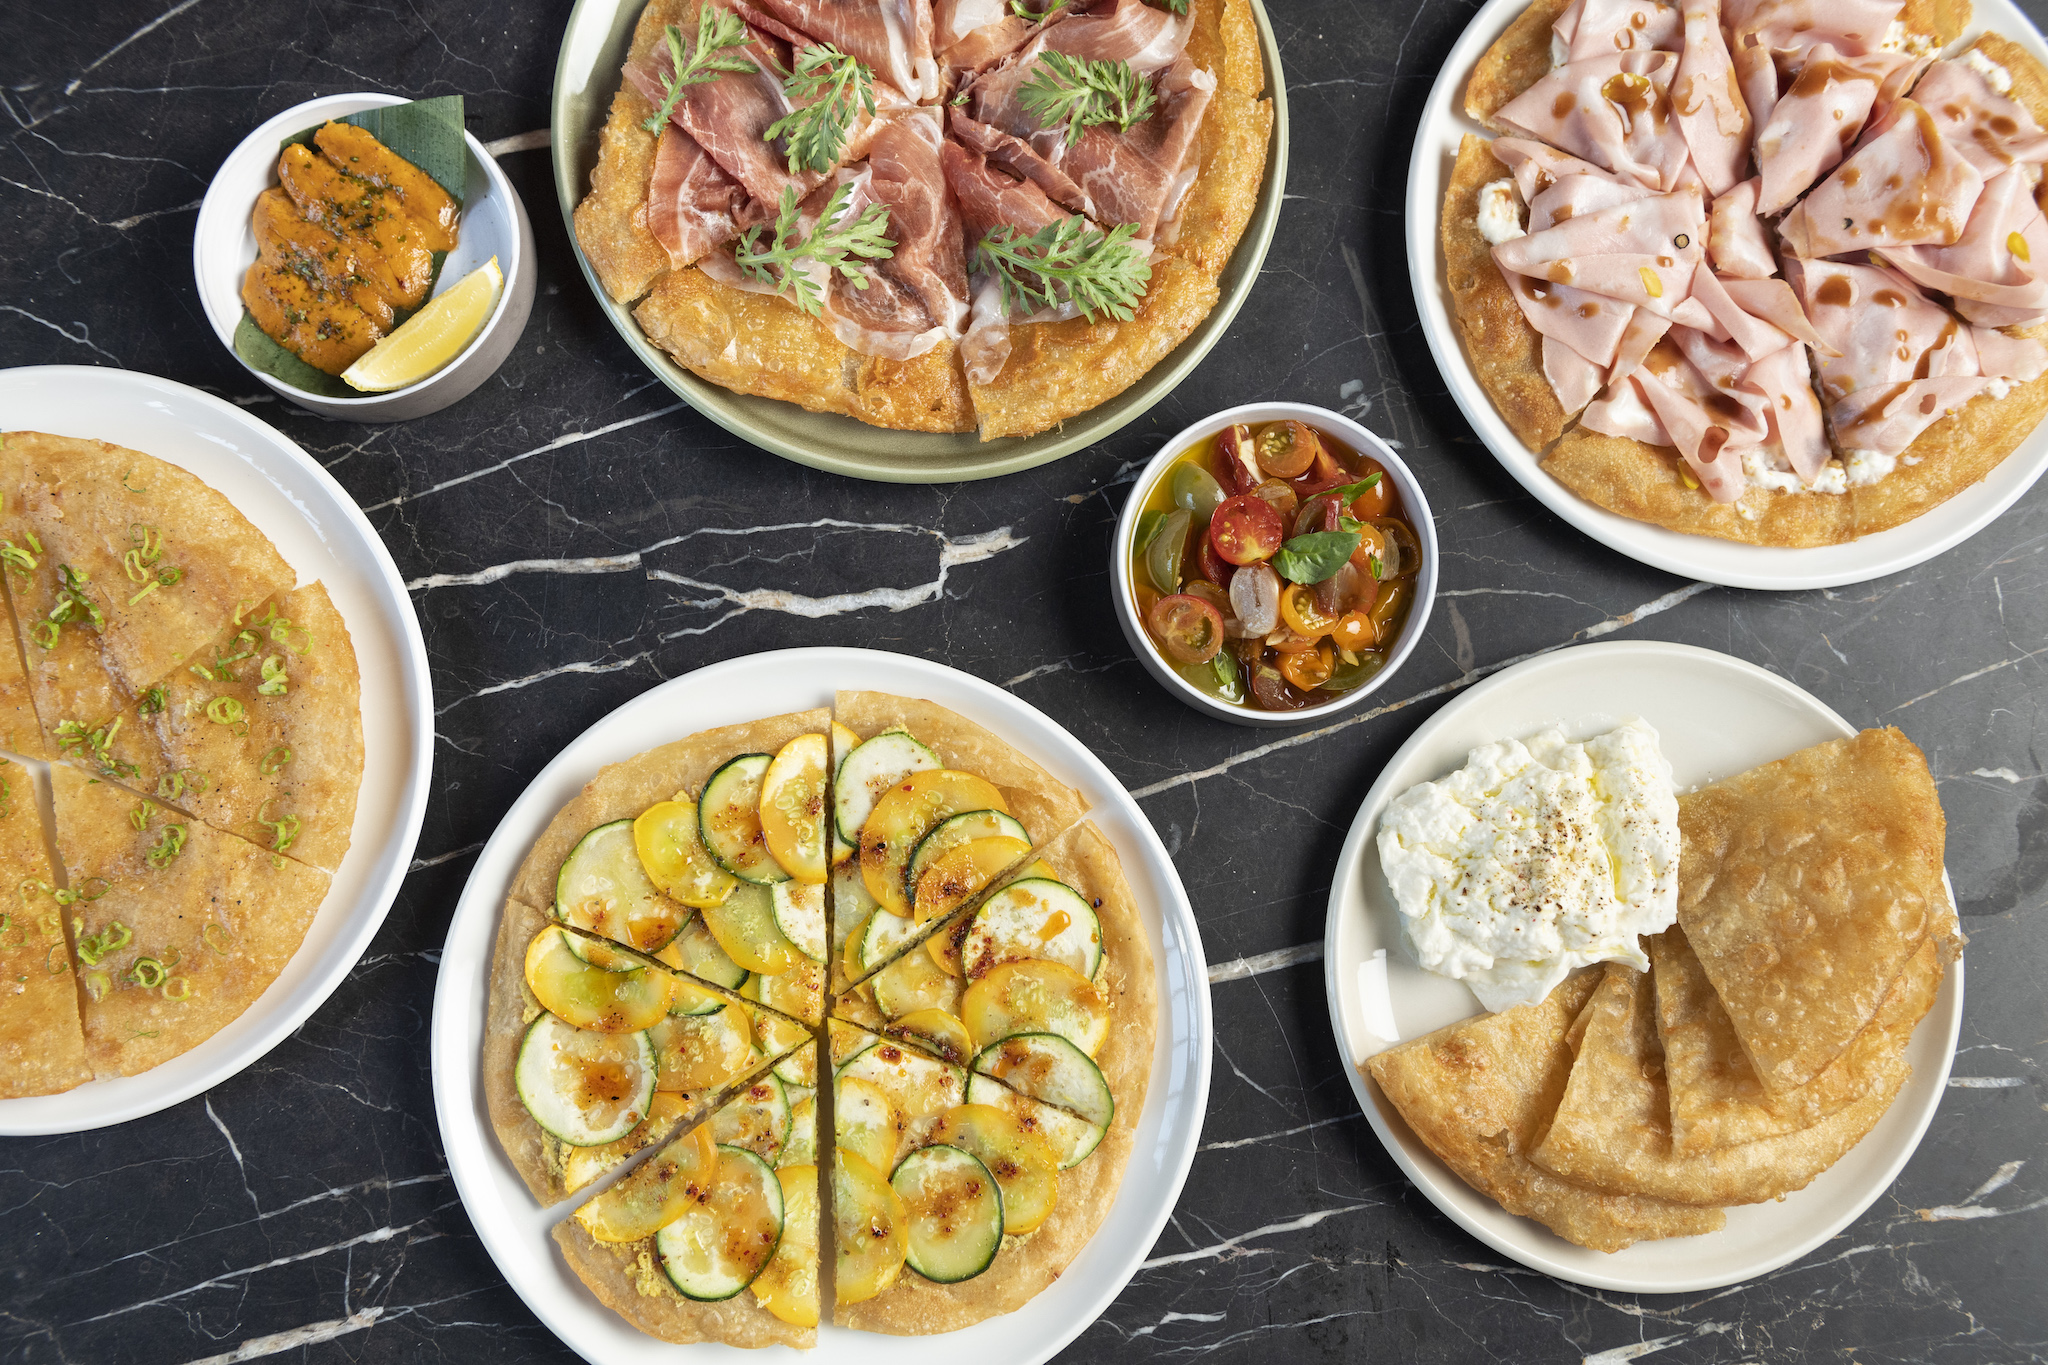 A spread of dishes with flatbreads topped with different items such as mortadella and zuchinni.